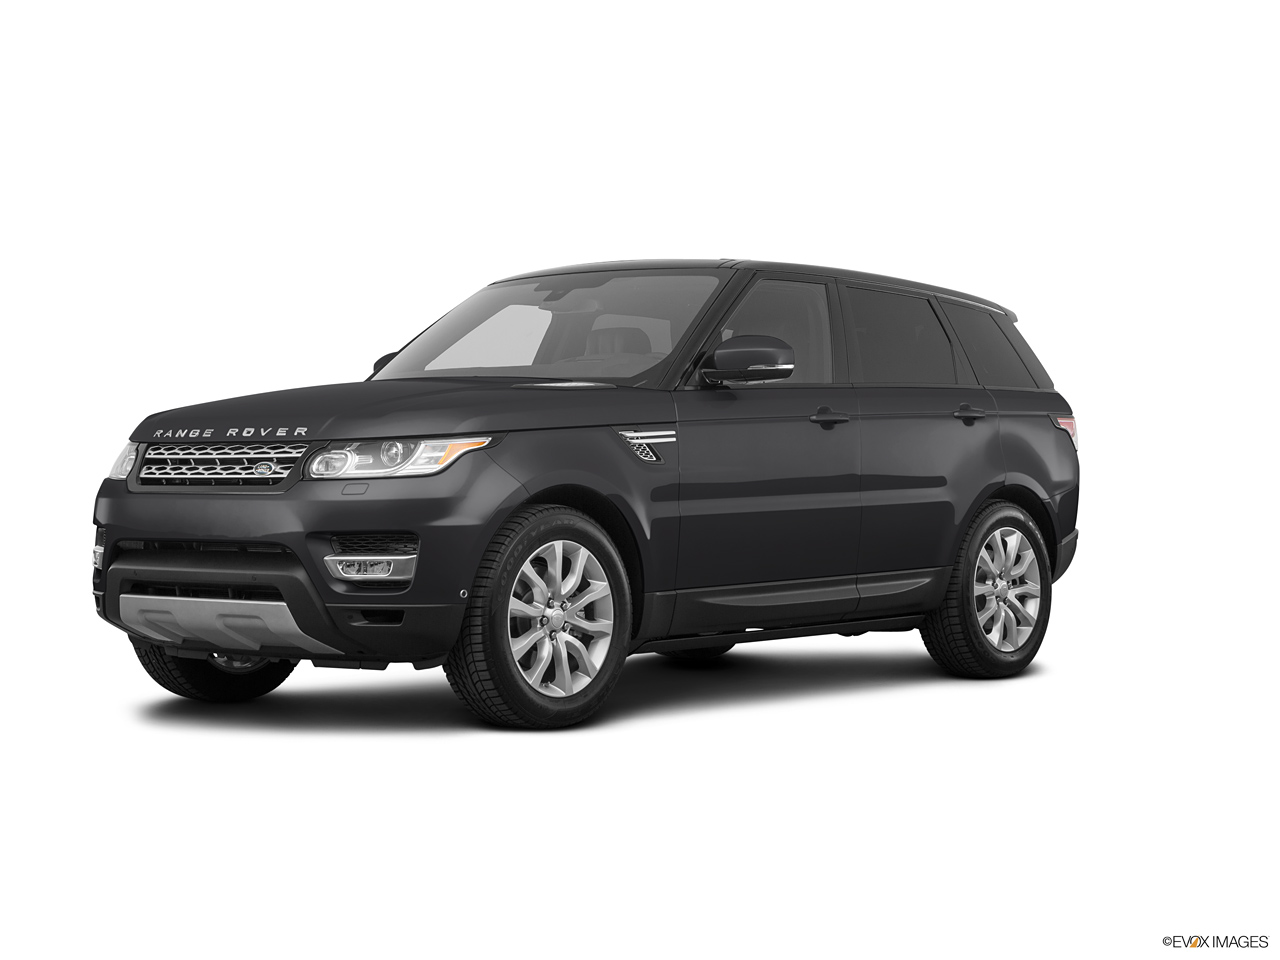 car features list for land rover range rover sport 2016 supercharged oman yallamotor. Black Bedroom Furniture Sets. Home Design Ideas